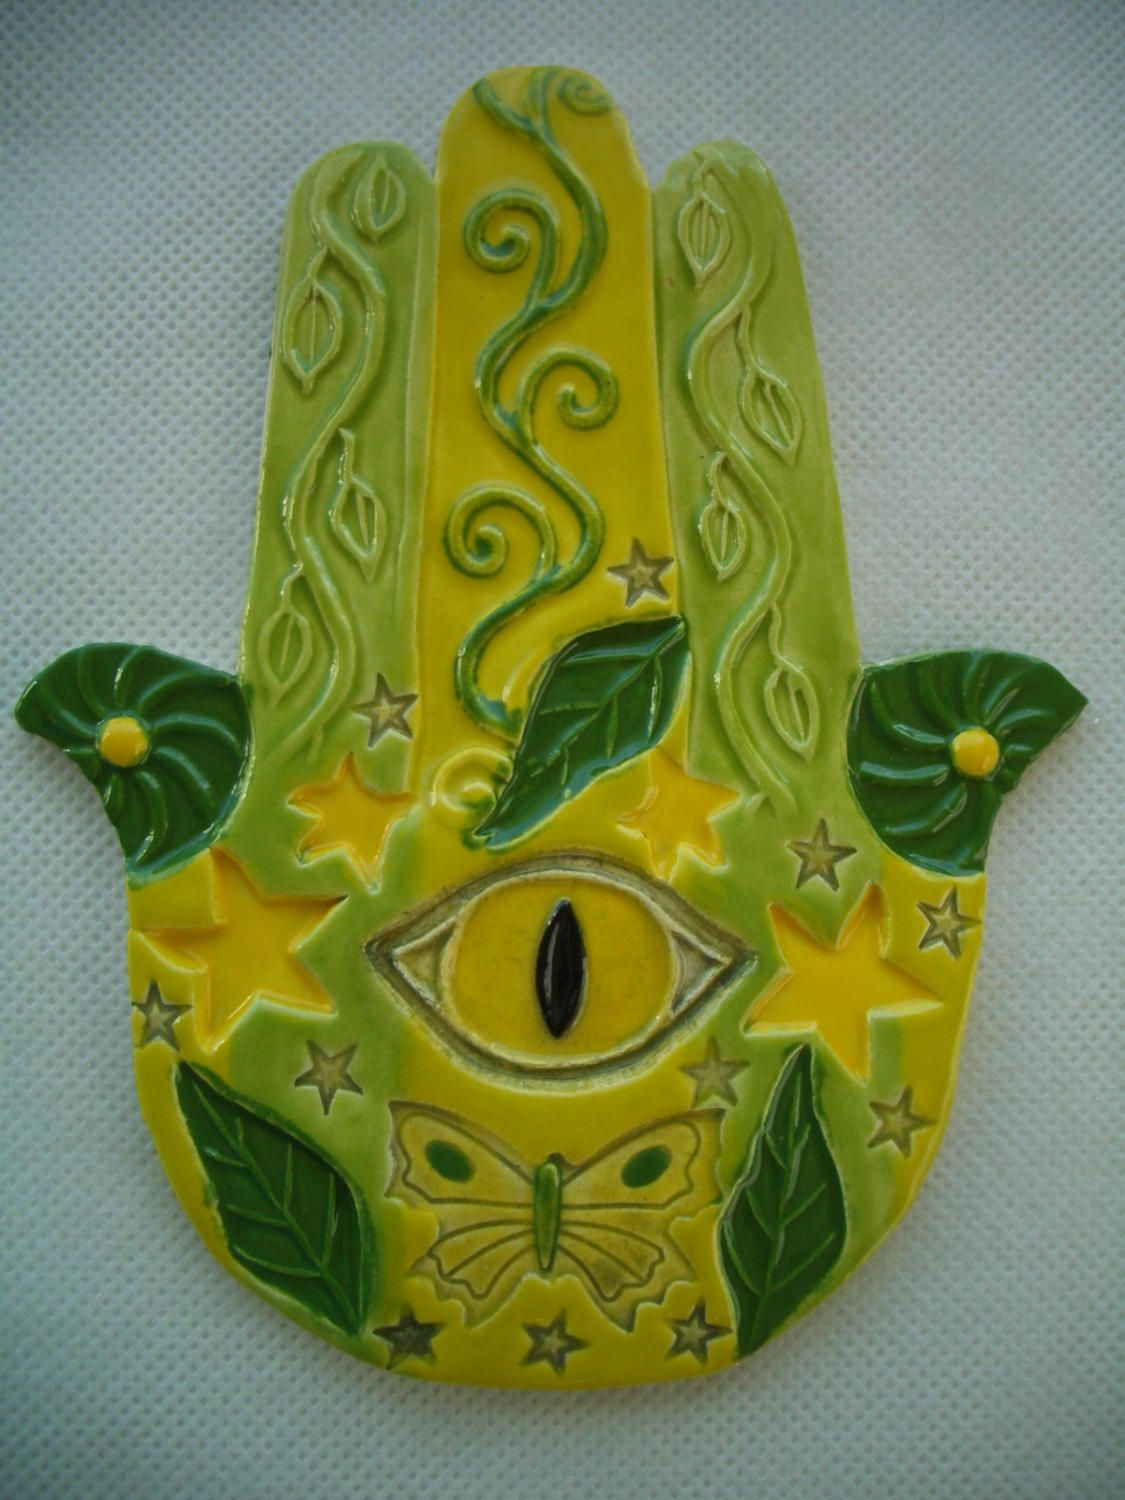 BIRT - HAMSA Hand, Good Luck, Protection - Ceramic Mosaic Tiles by TinkerTiles on Etsy